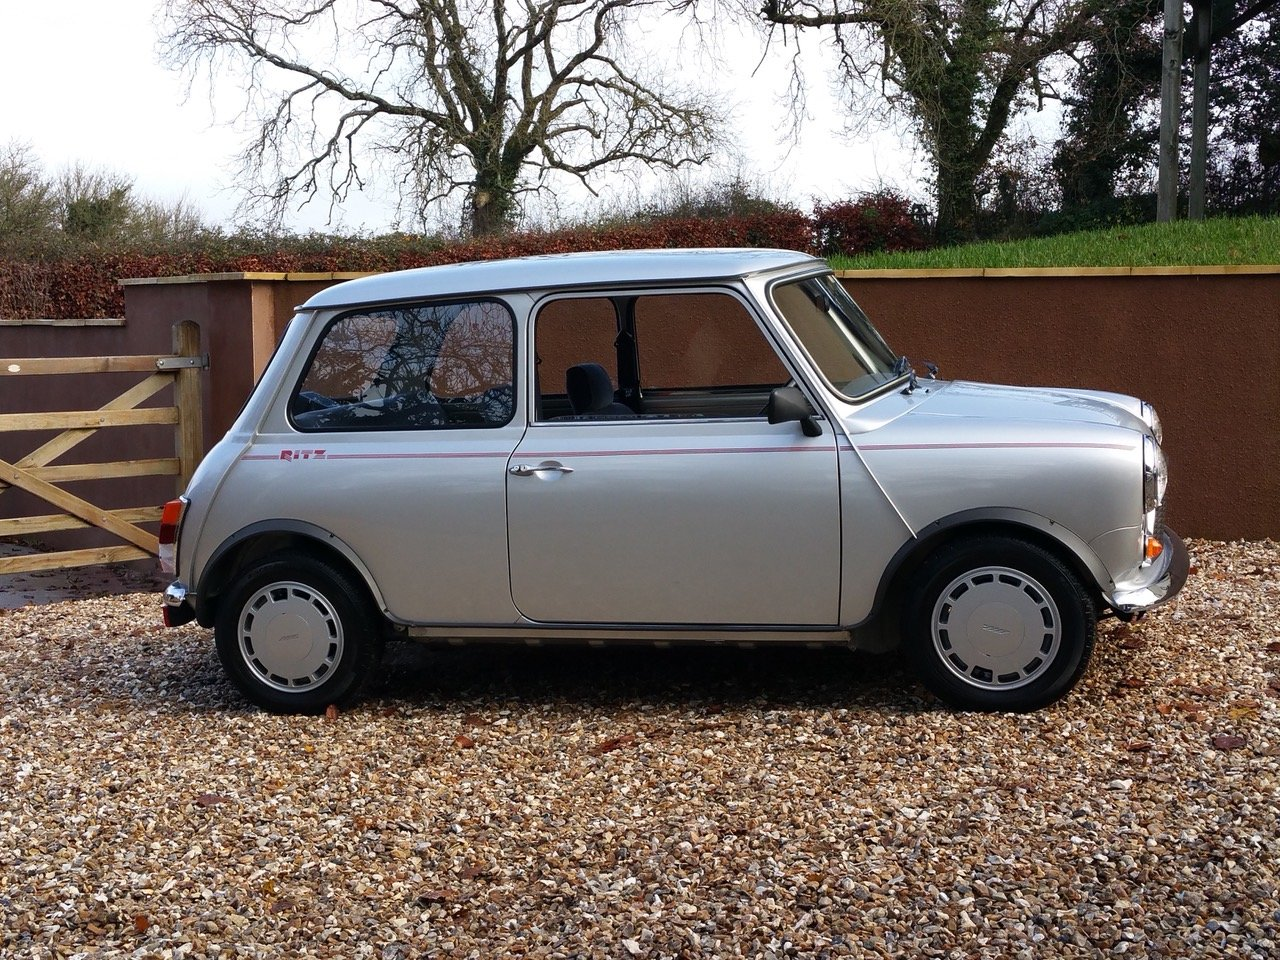 1992 'Time Warp' Mini Ritz On Just 3820 Miles From New SOLD (picture 2 of 10)